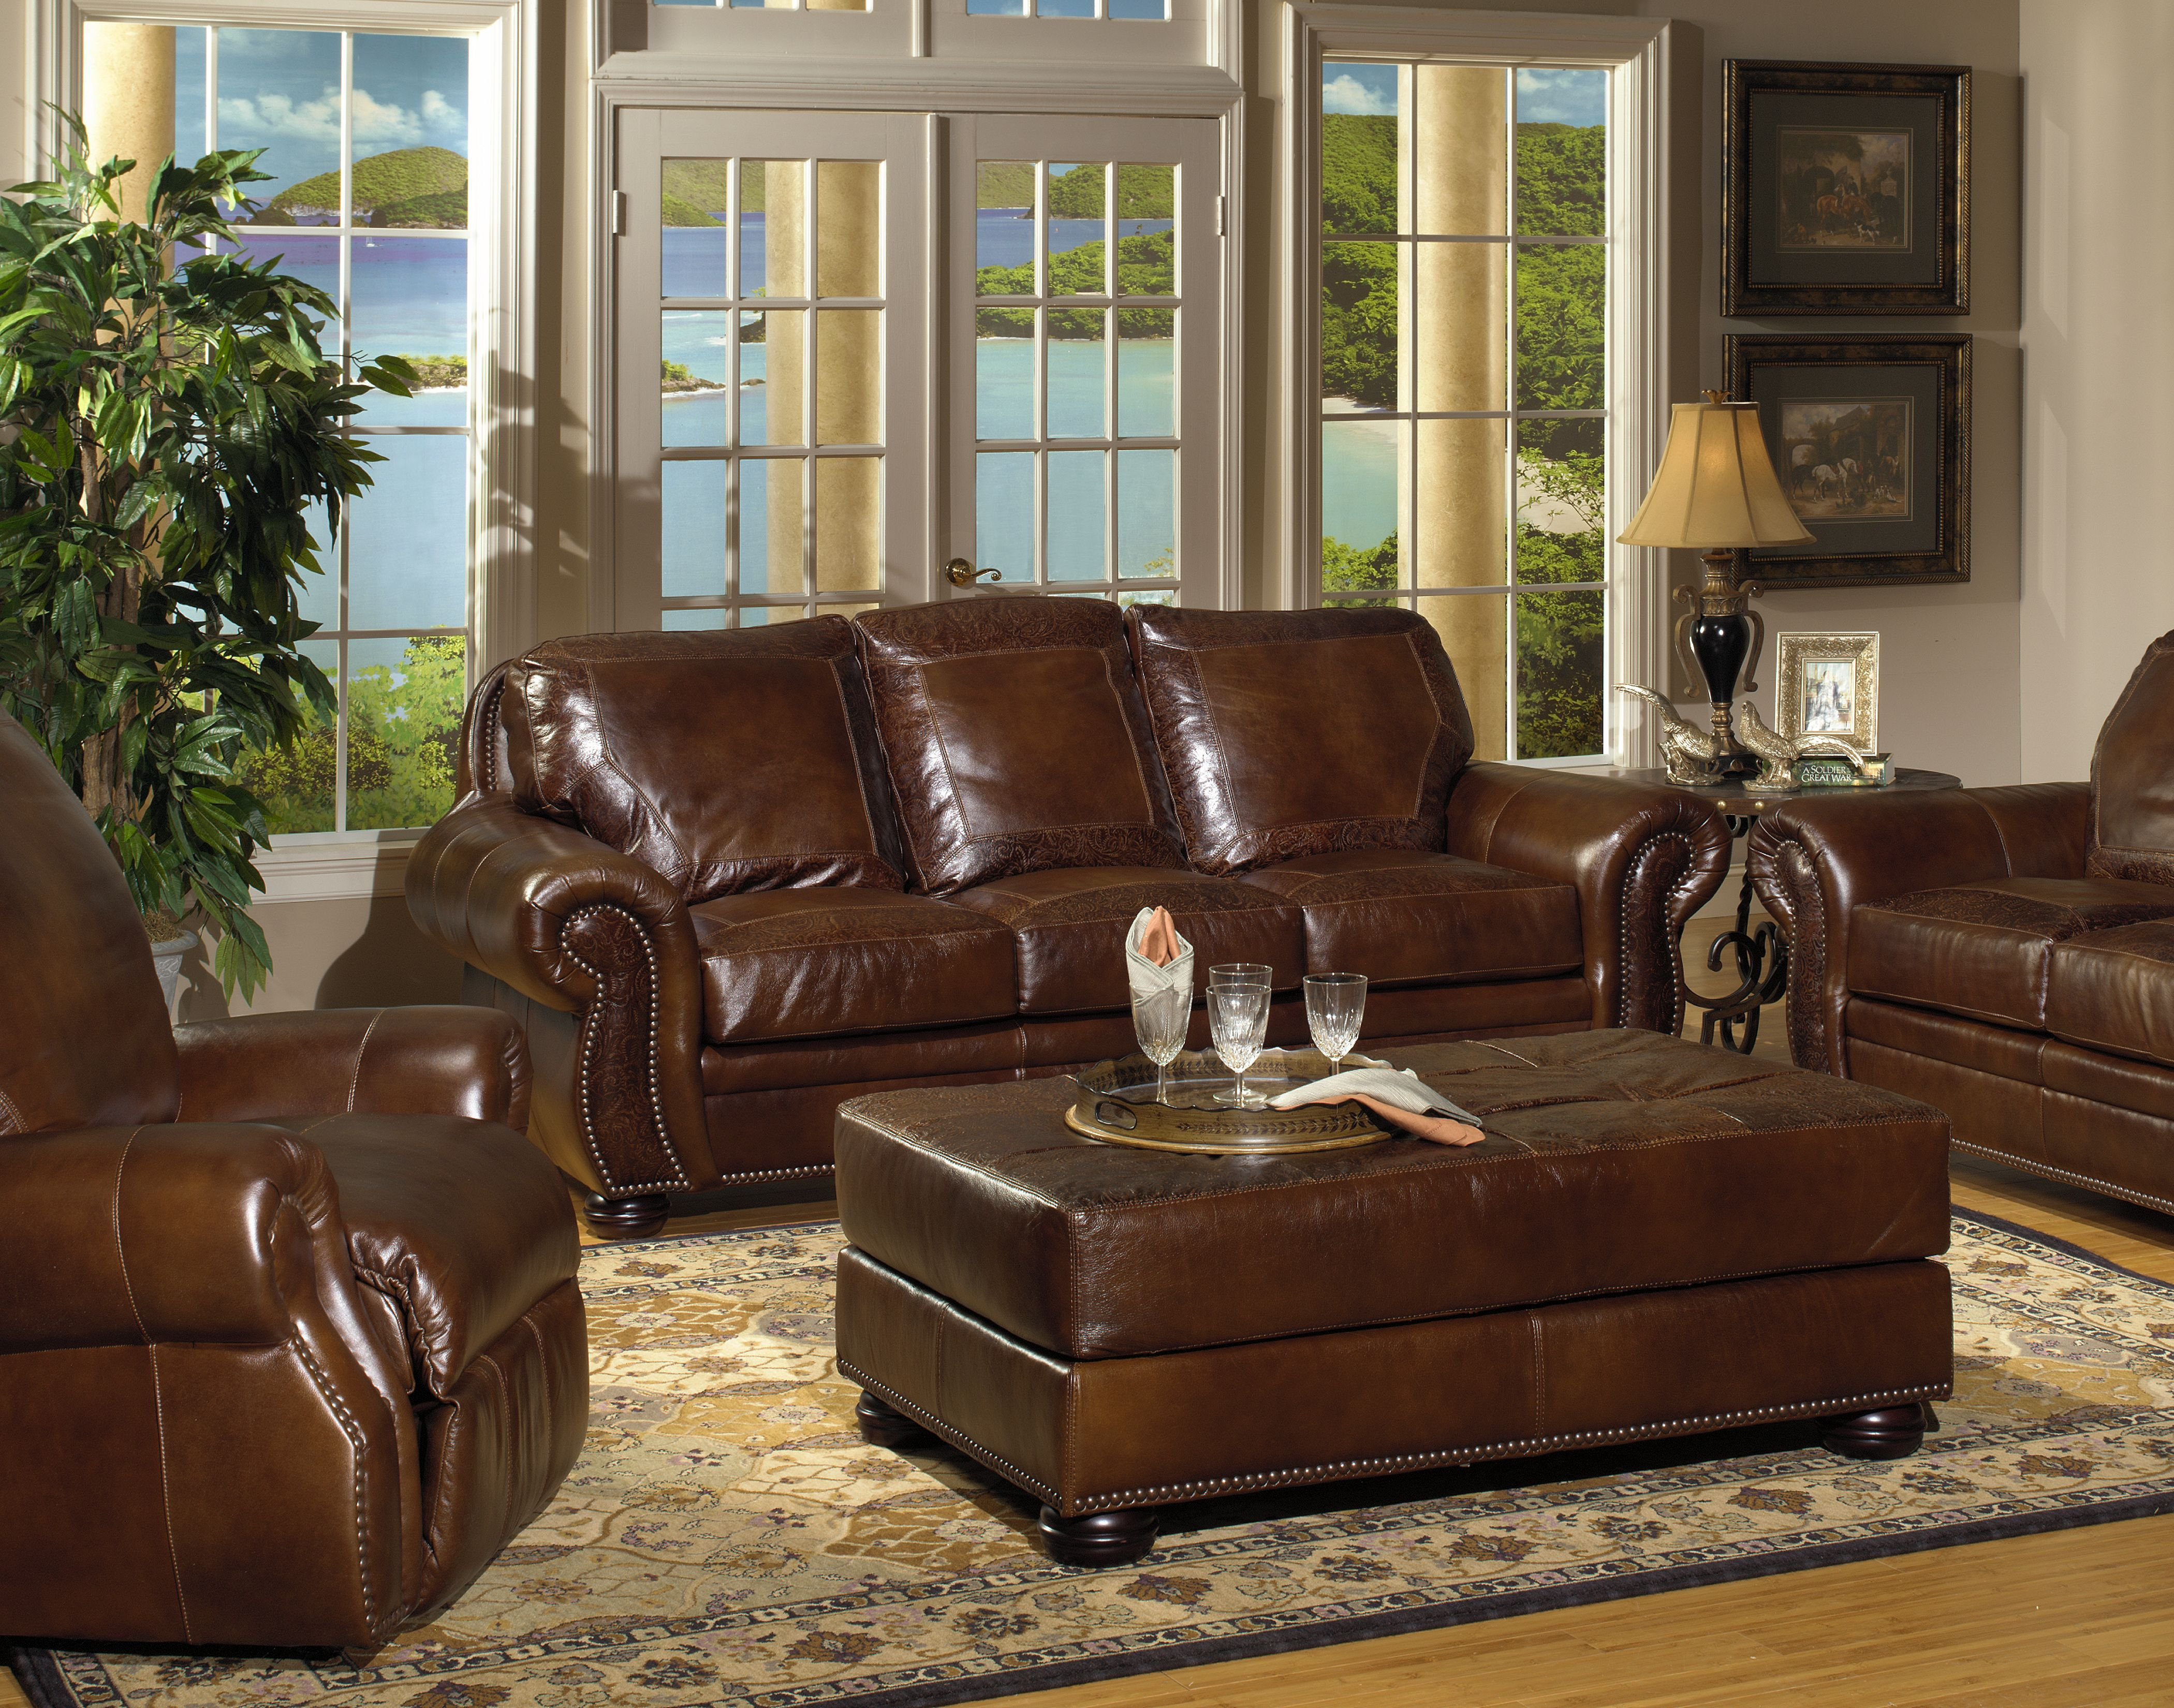 USA Premium Leather Furniture 8555 For the Home